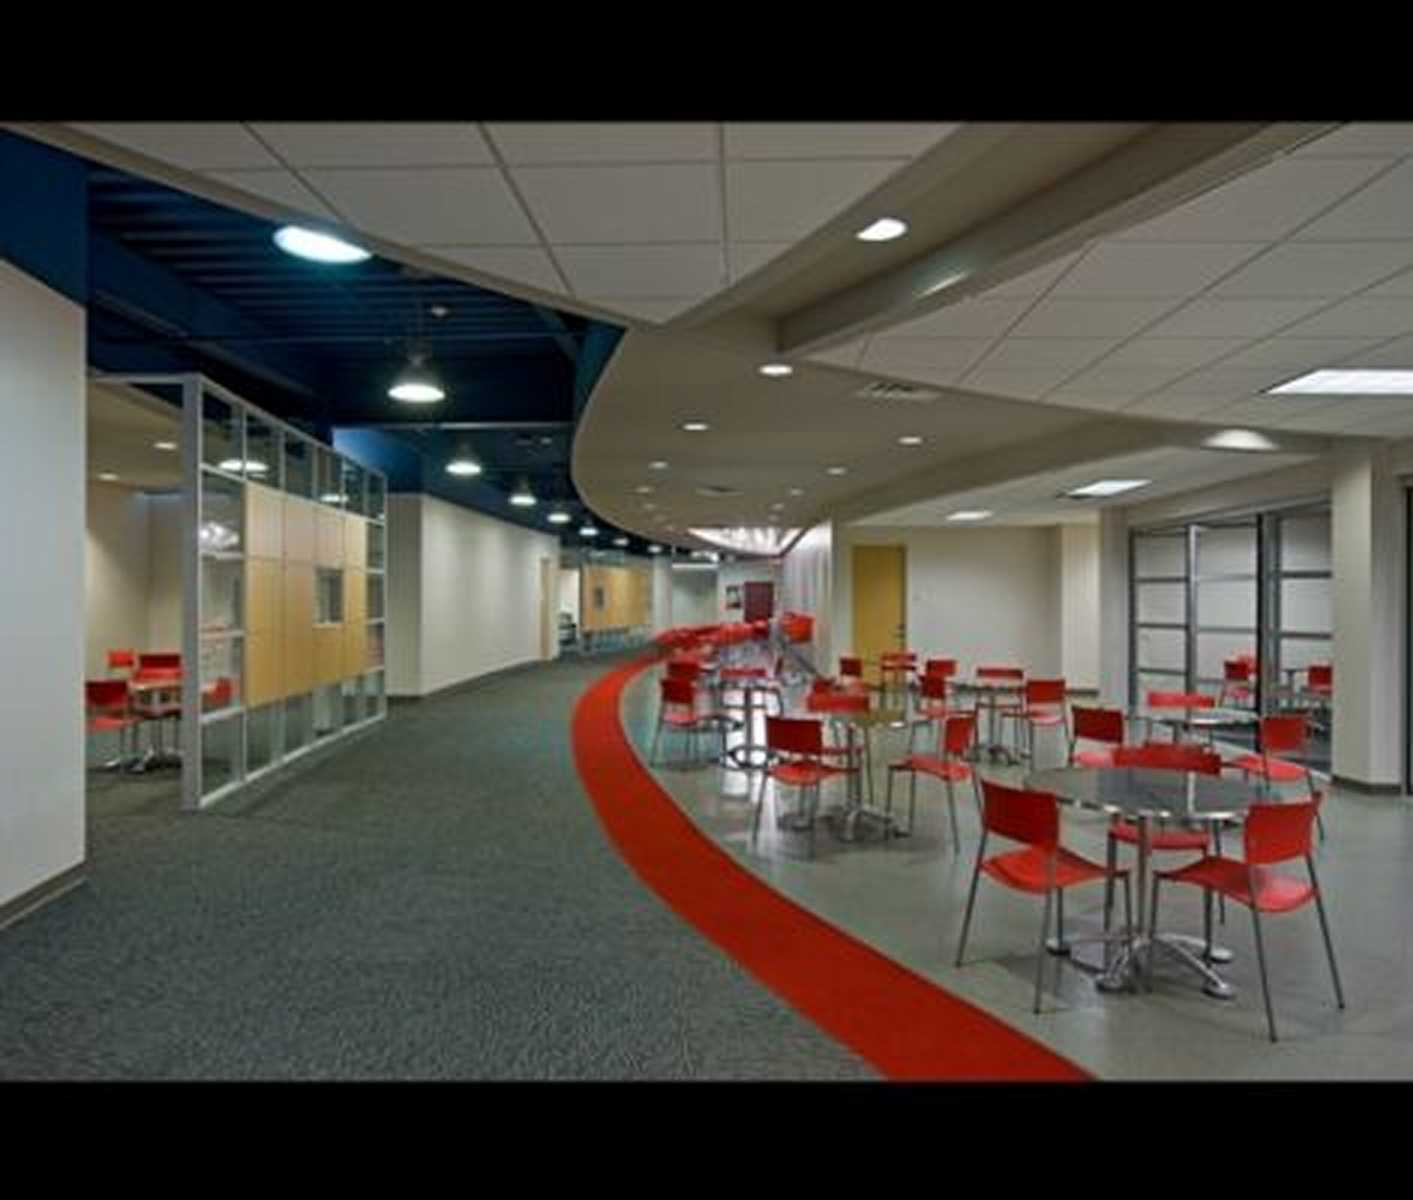 Houston Community College West Loop Campus | Studio RED Architects